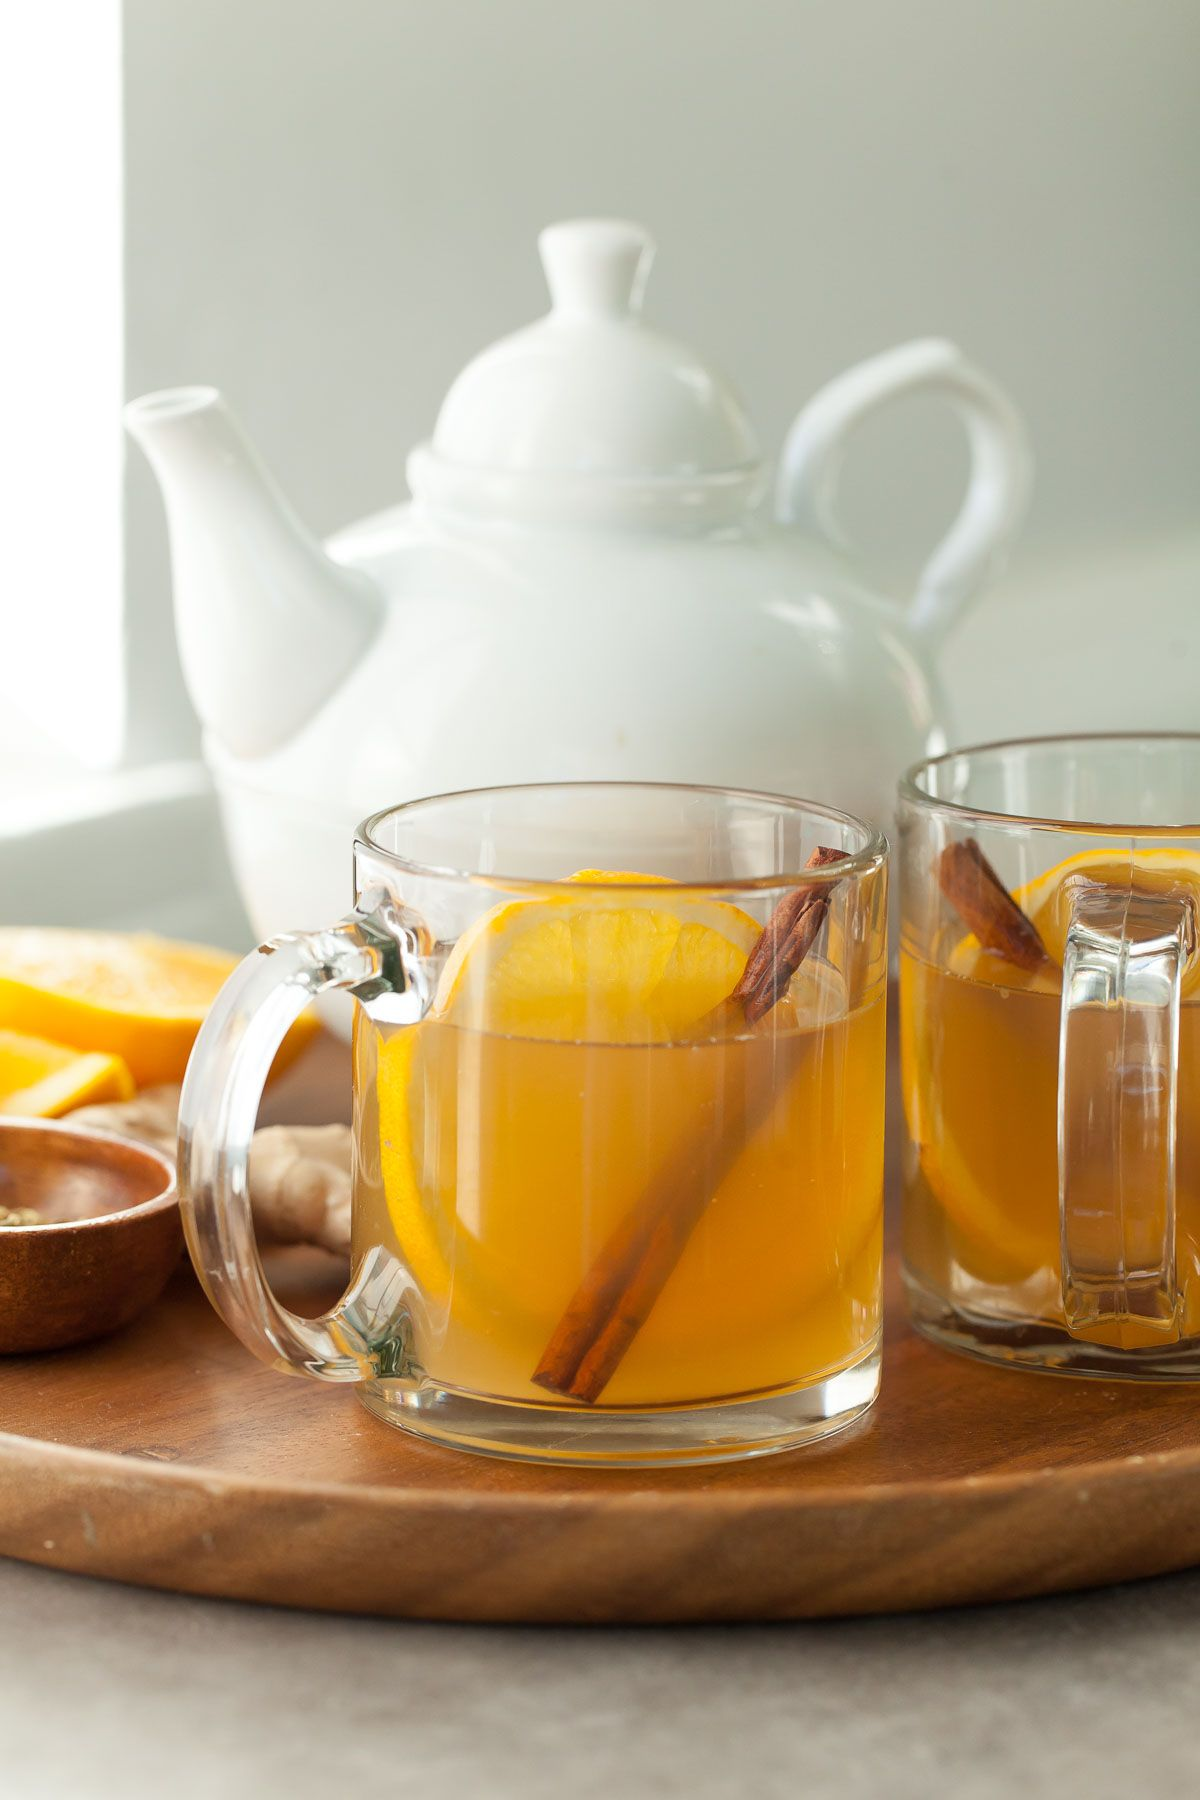 After Dinner Digestion Tea After Dinner Digestion Tea  Make your belly happy and cozy up to a big mug of digestion tea after dinner